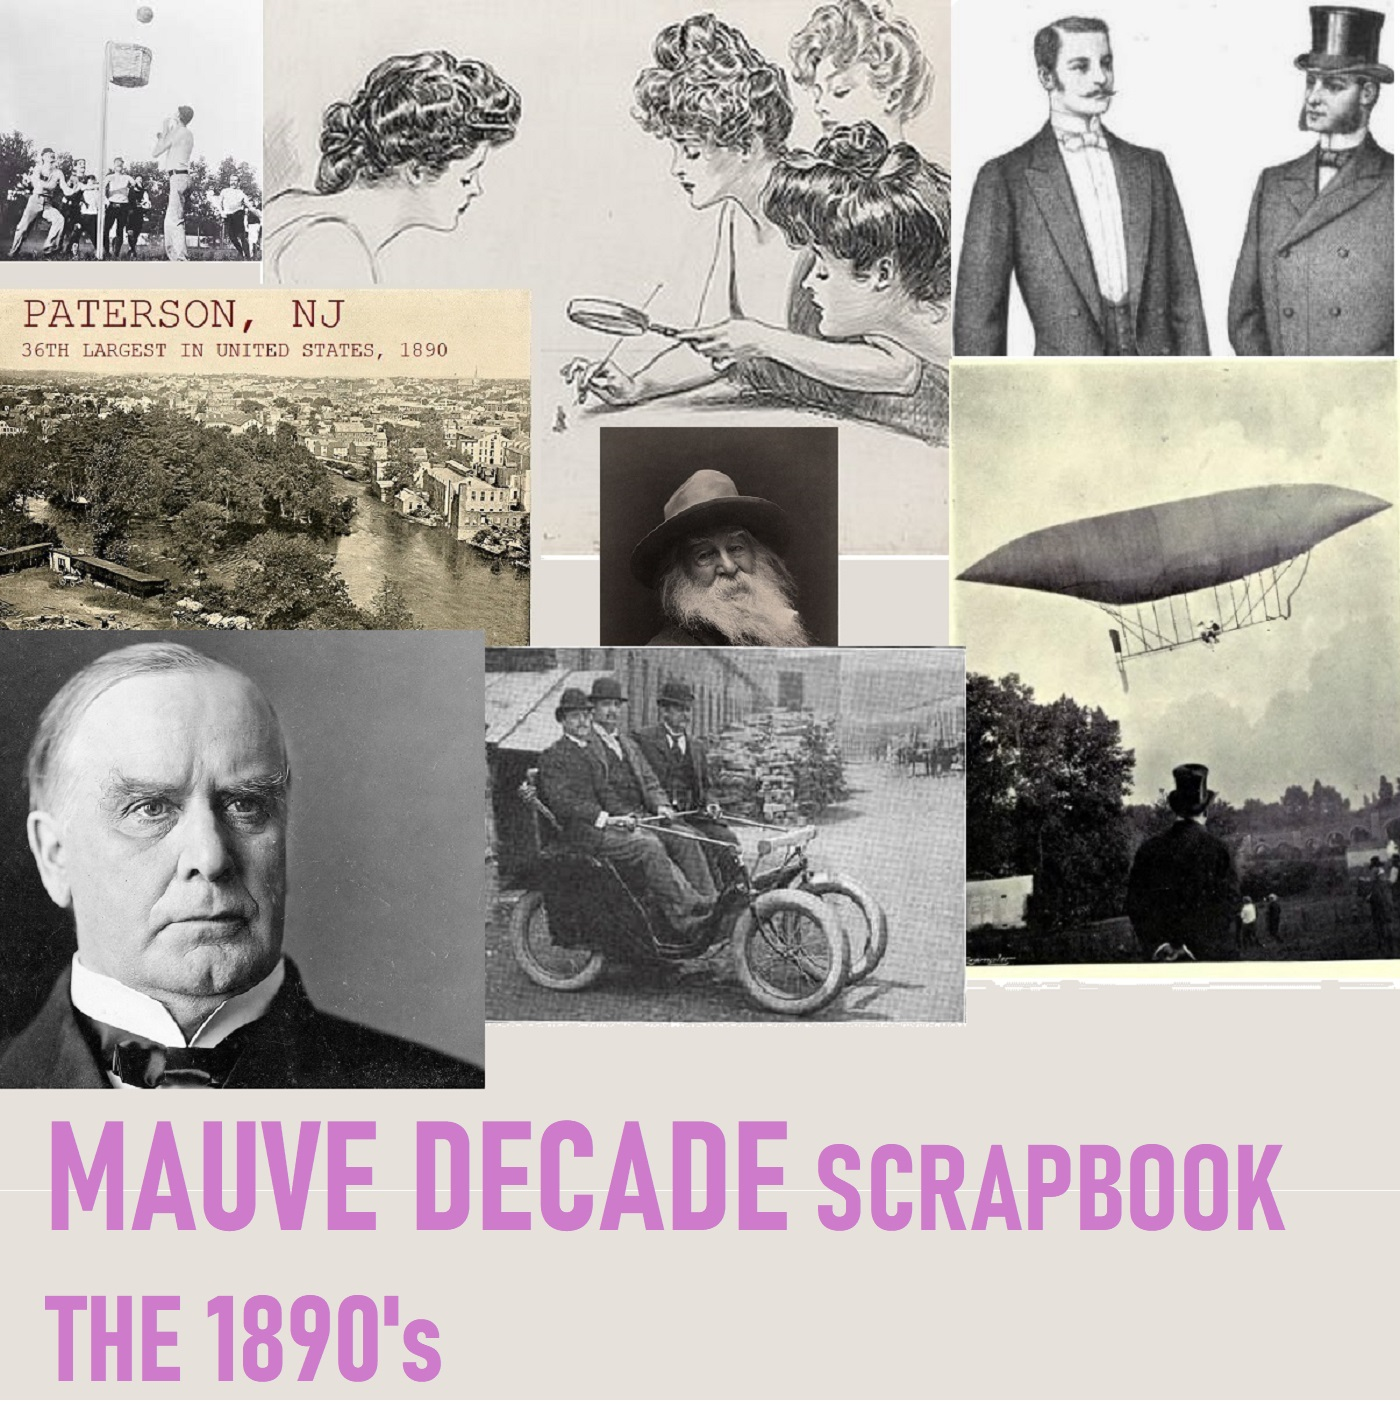 Mauve Decade: An 1890's Scrapbook